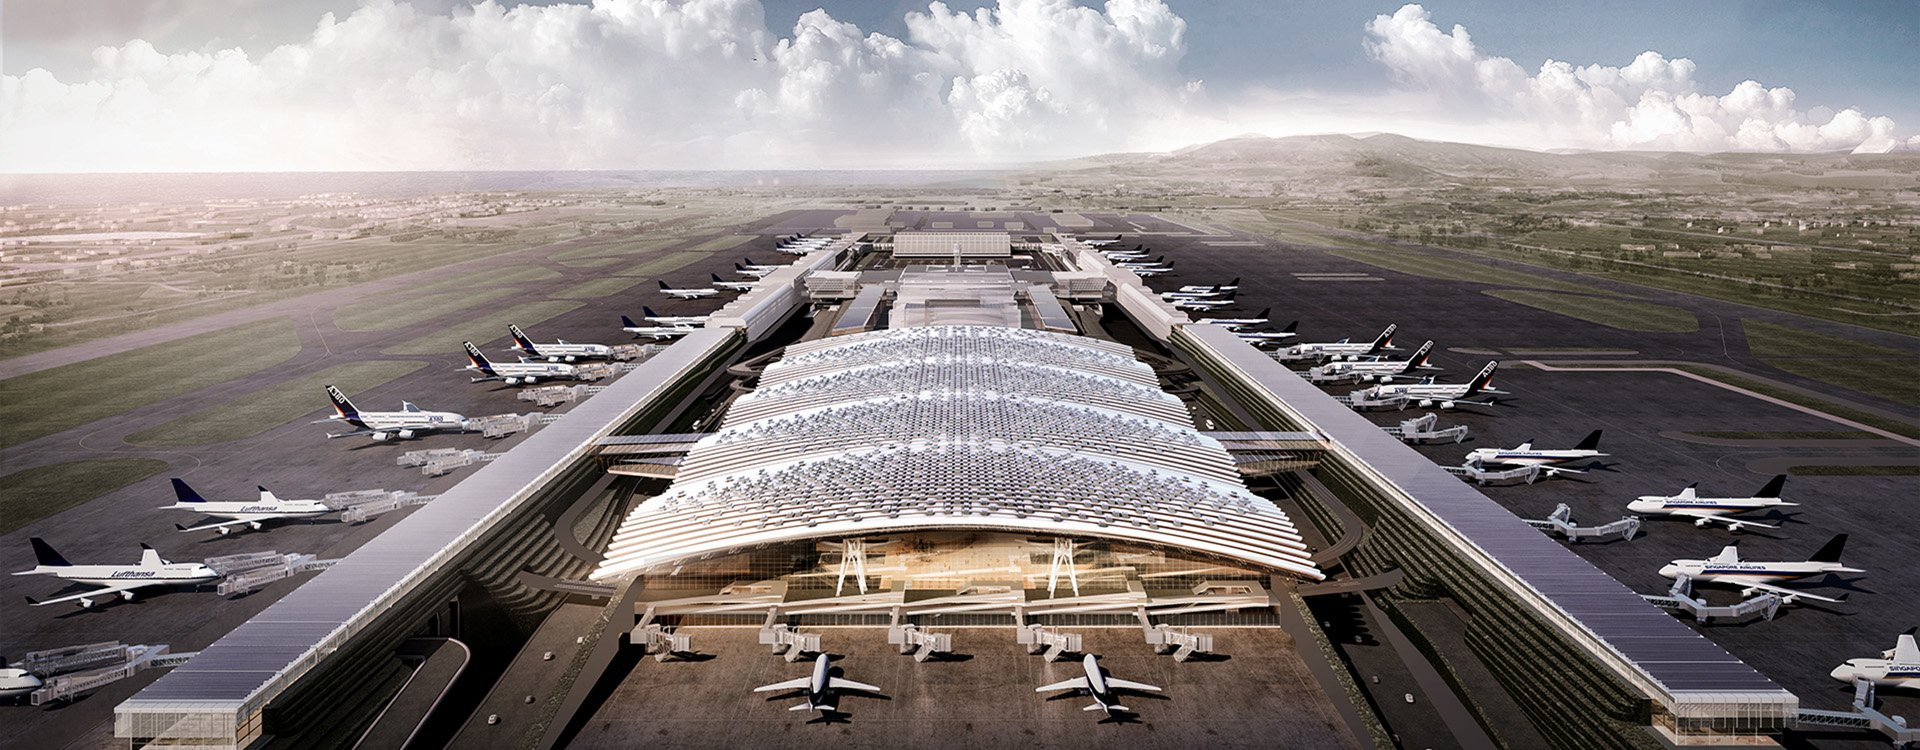 Taoyuan-International-Airport-Terminal-3-Aviation-NACO